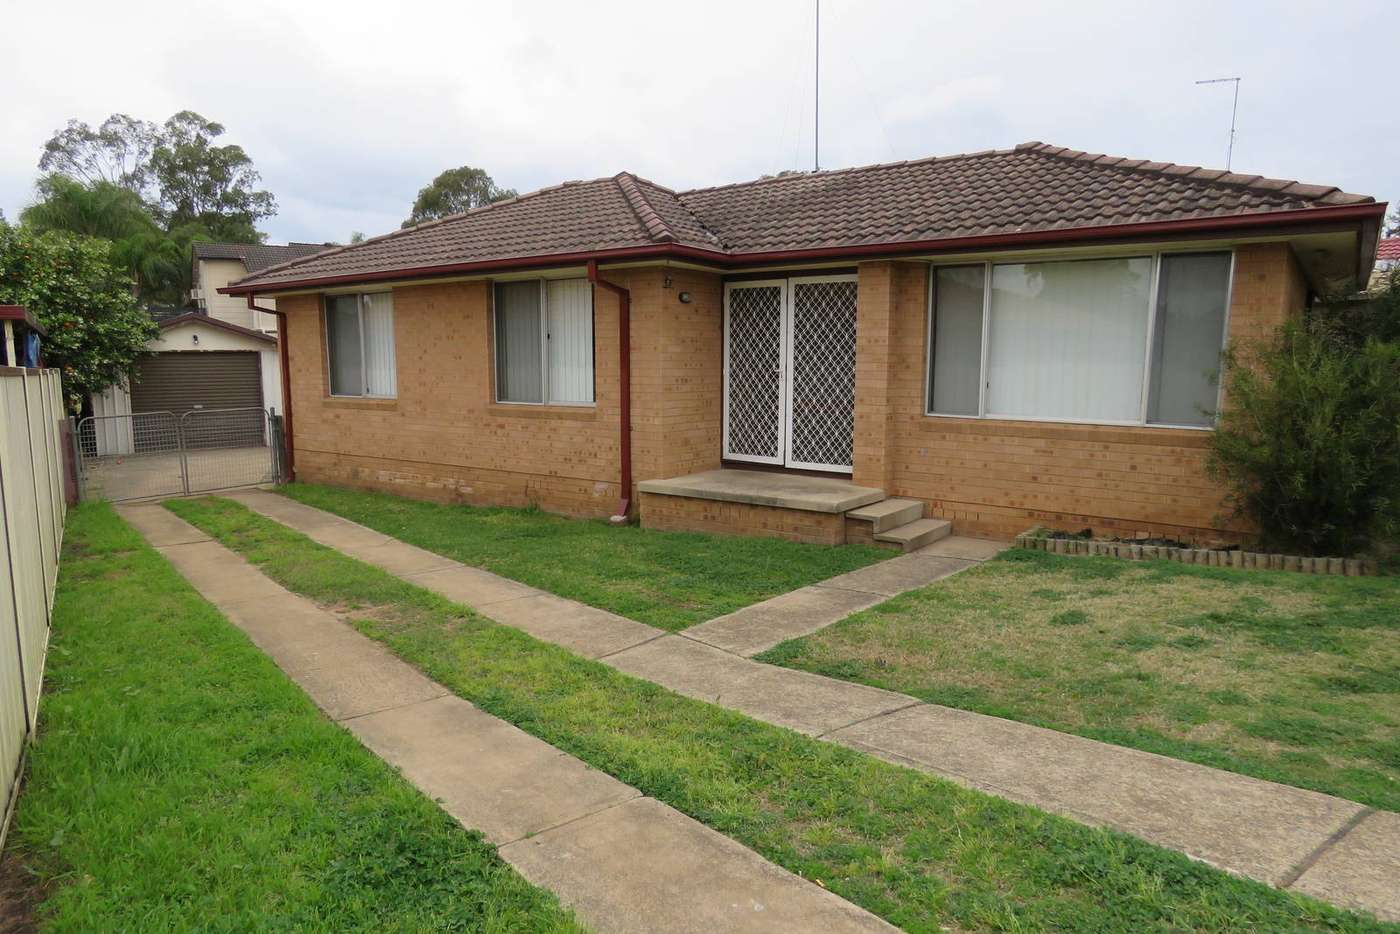 Sixth view of Homely house listing, 10 McCartney Crescent, St Clair NSW 2759